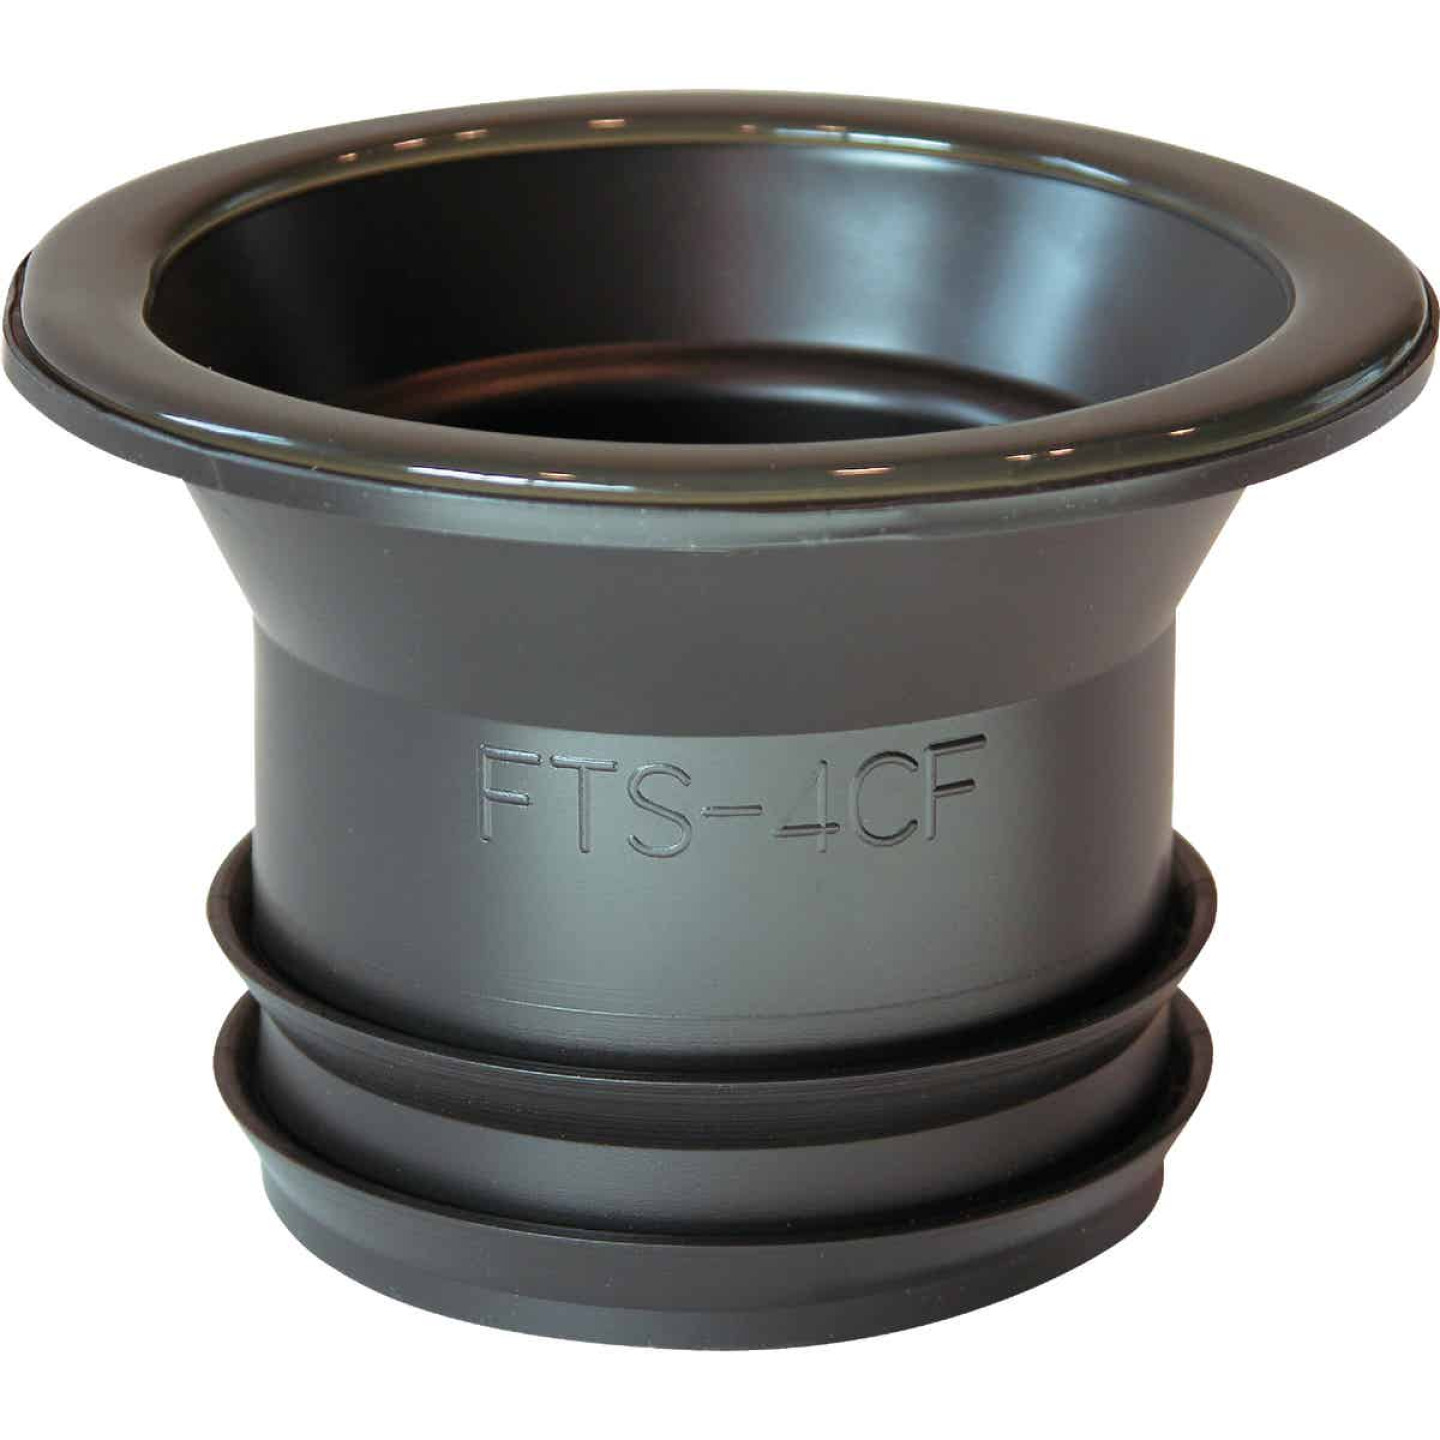 Wax-Free Toilet Gasket To Slab Flange  Image 1